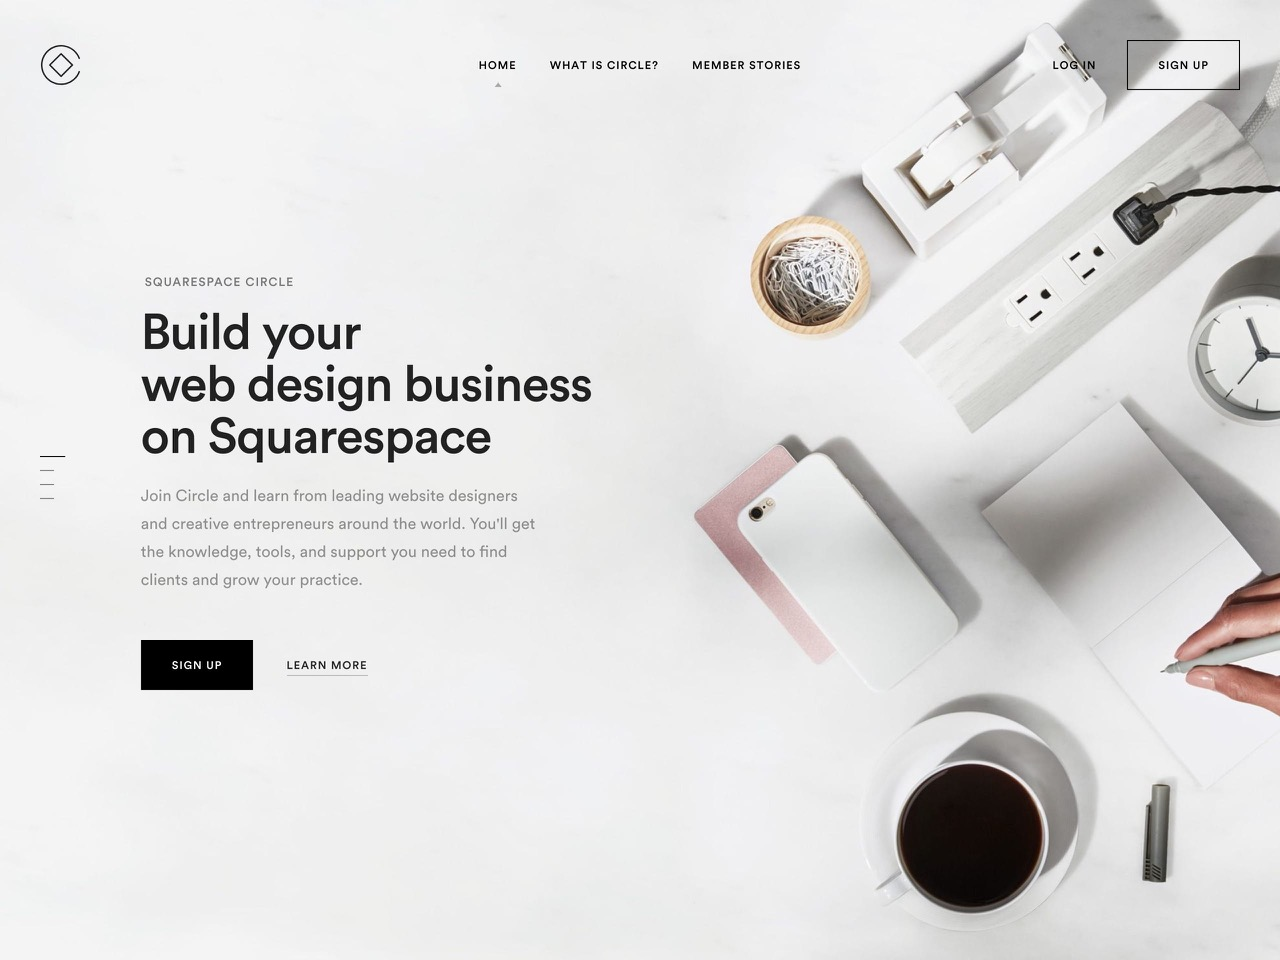 Squarespace circle  build your web design business